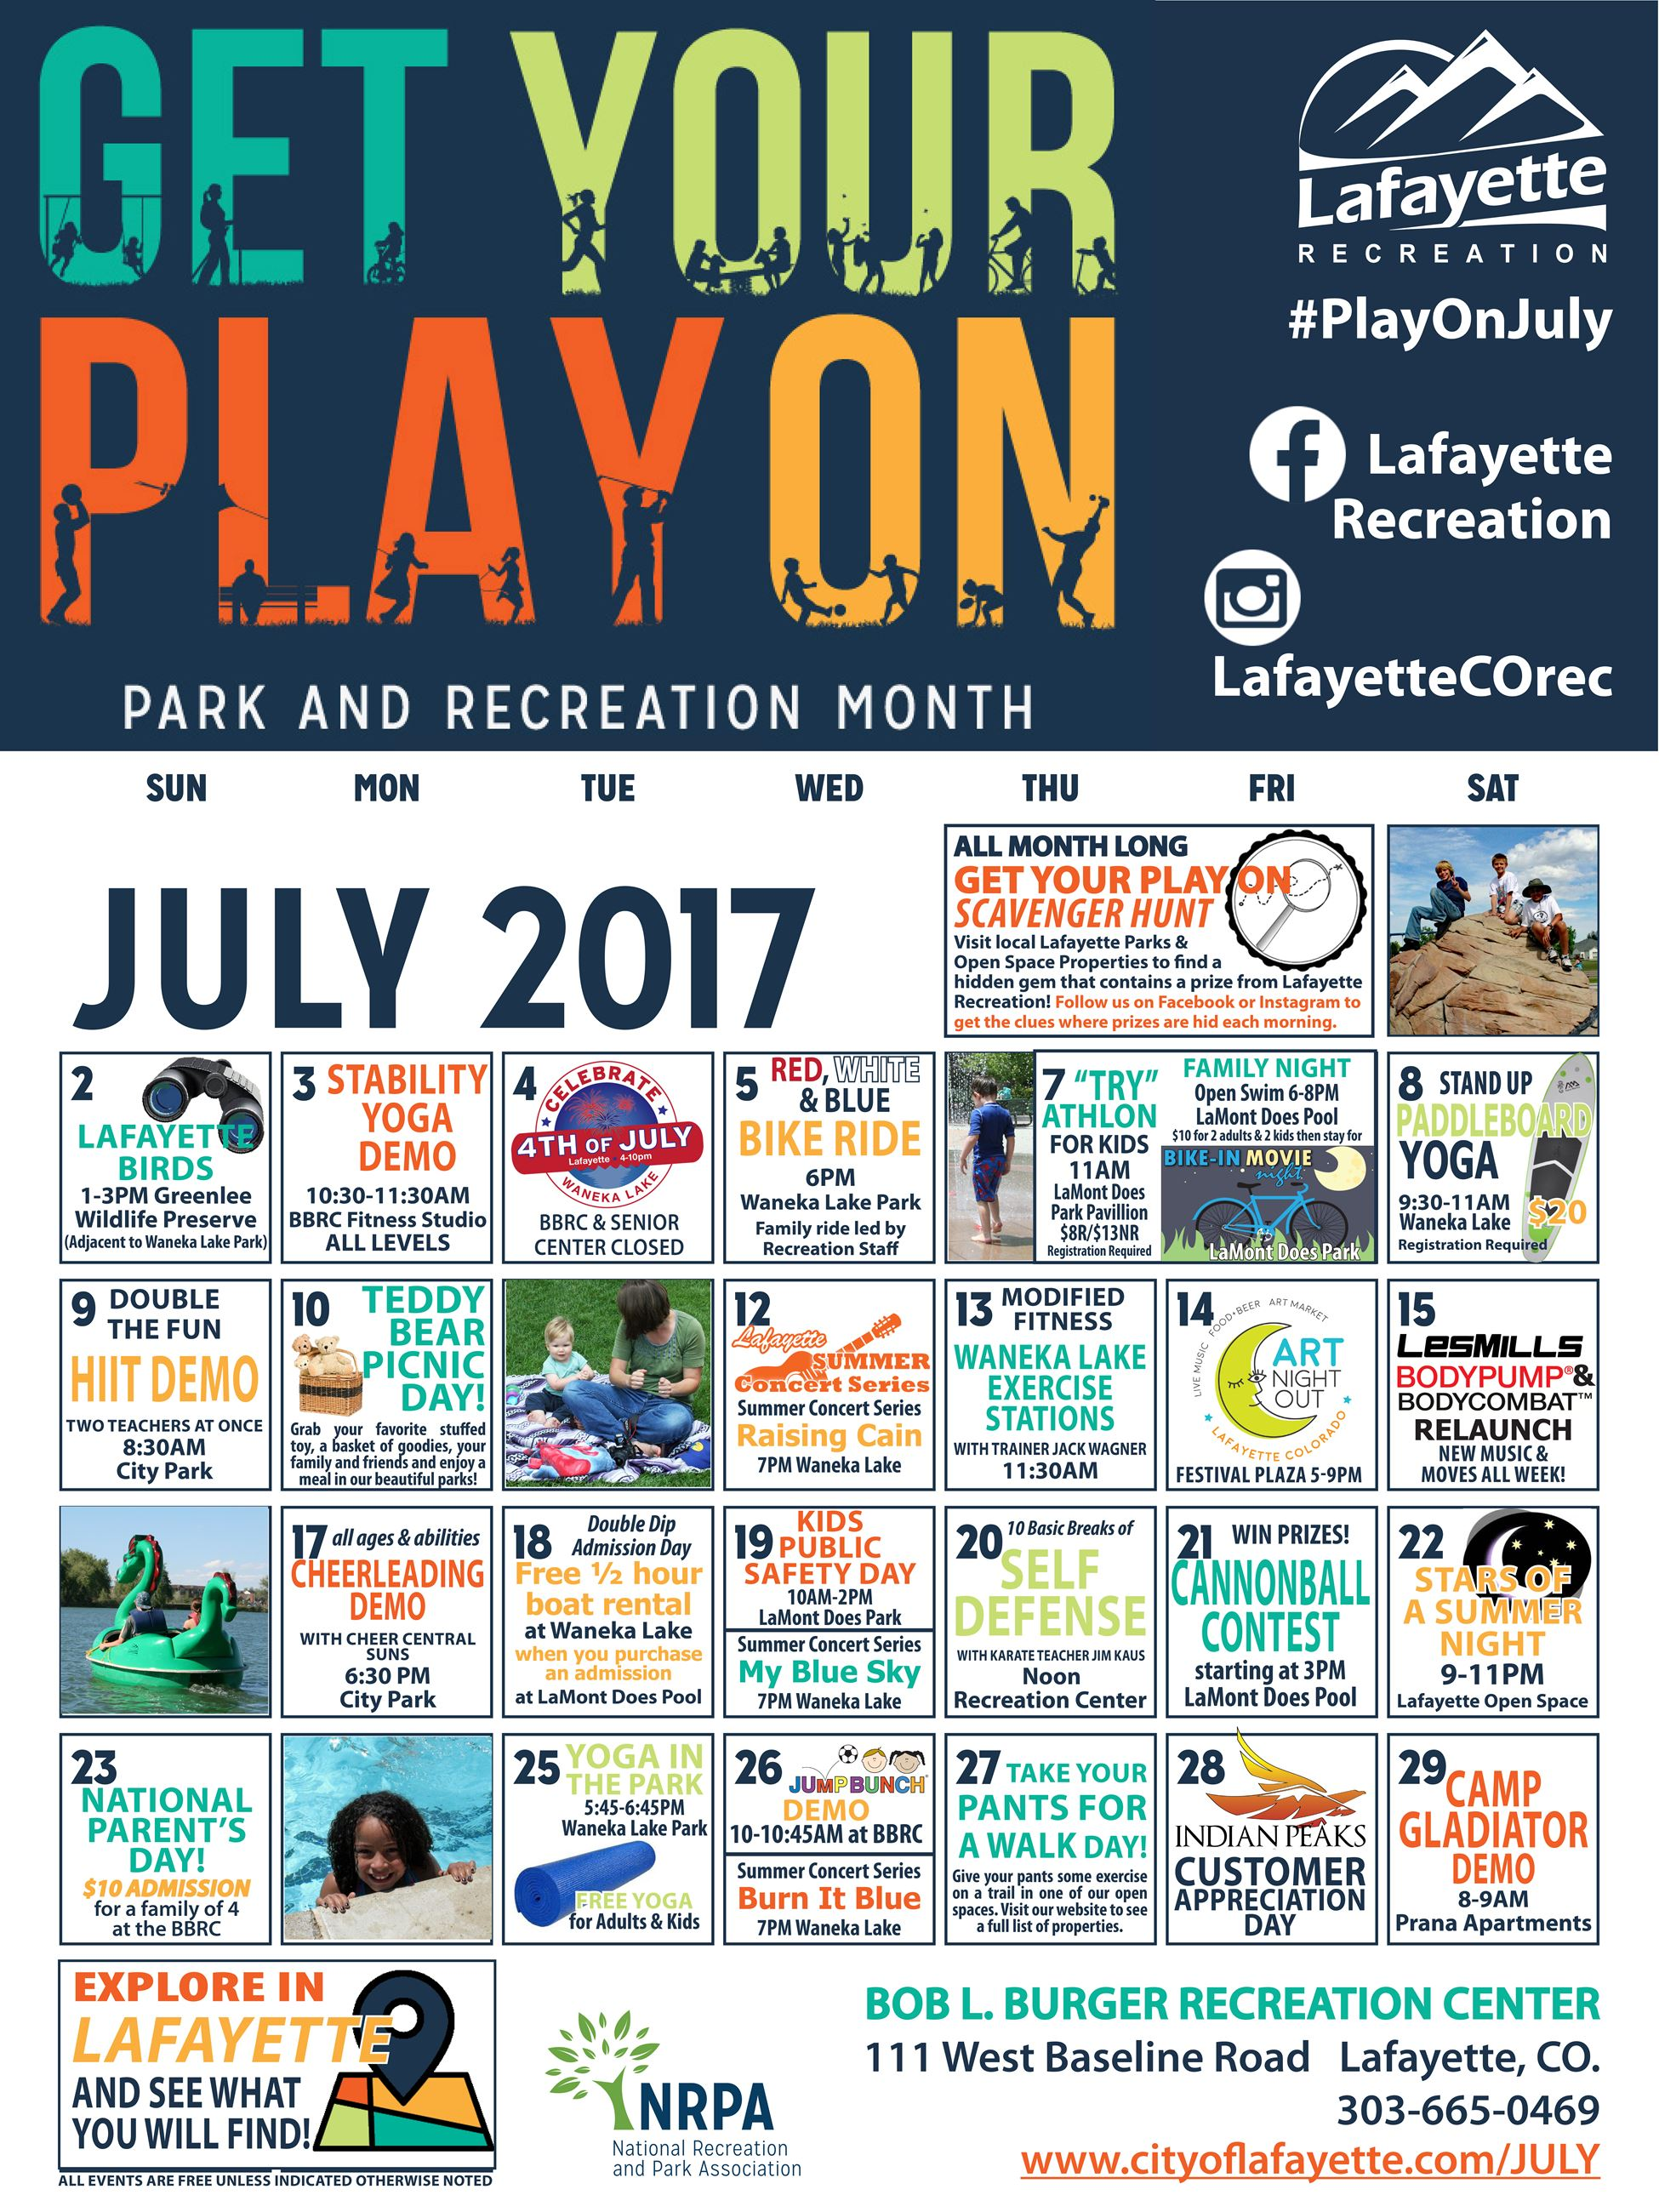 Lafayette 2017 Parks and Recreation month calendar